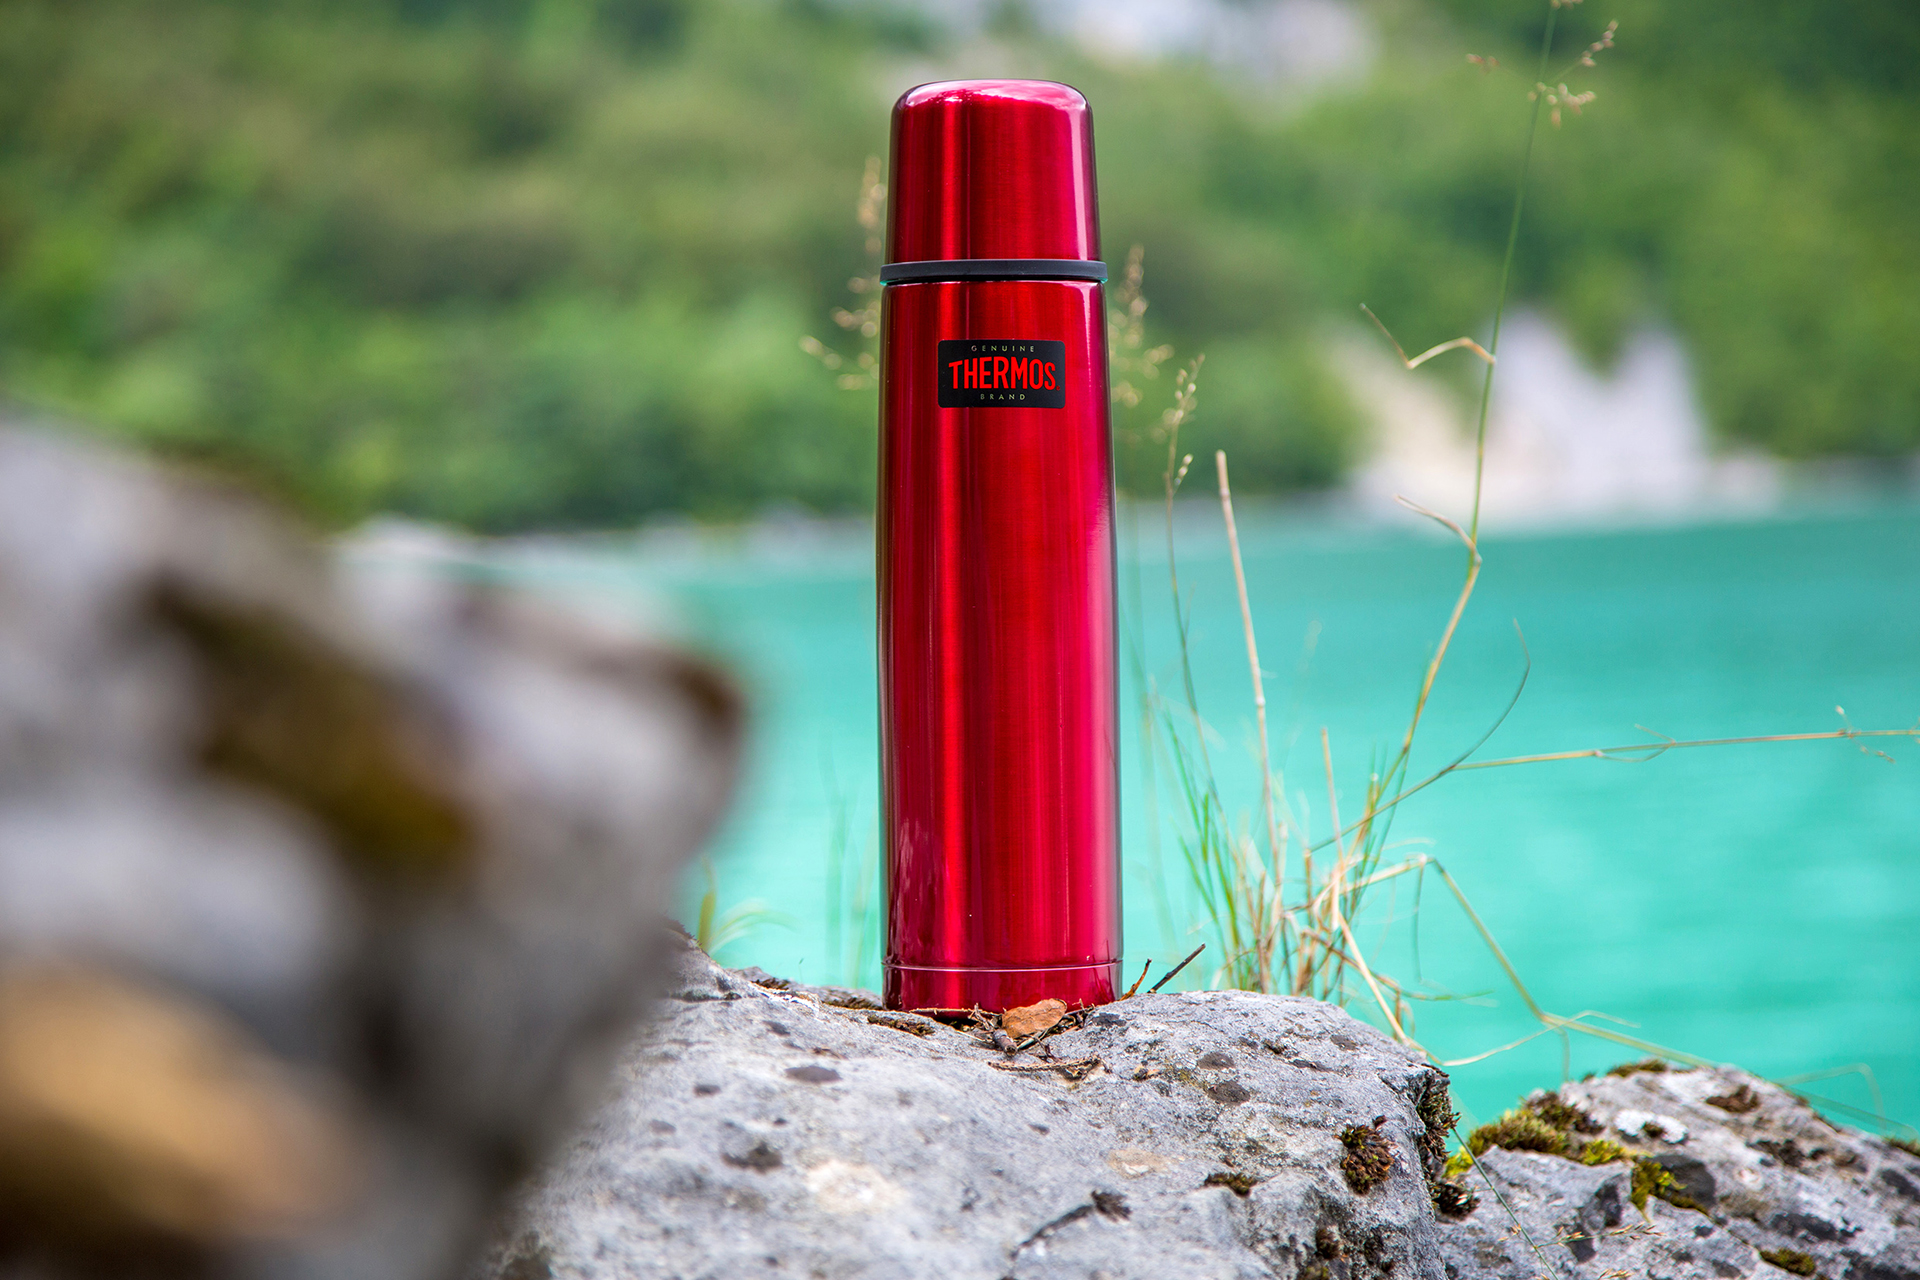 Das Original für Originale: Light & Compact von Thermos in Cranberry